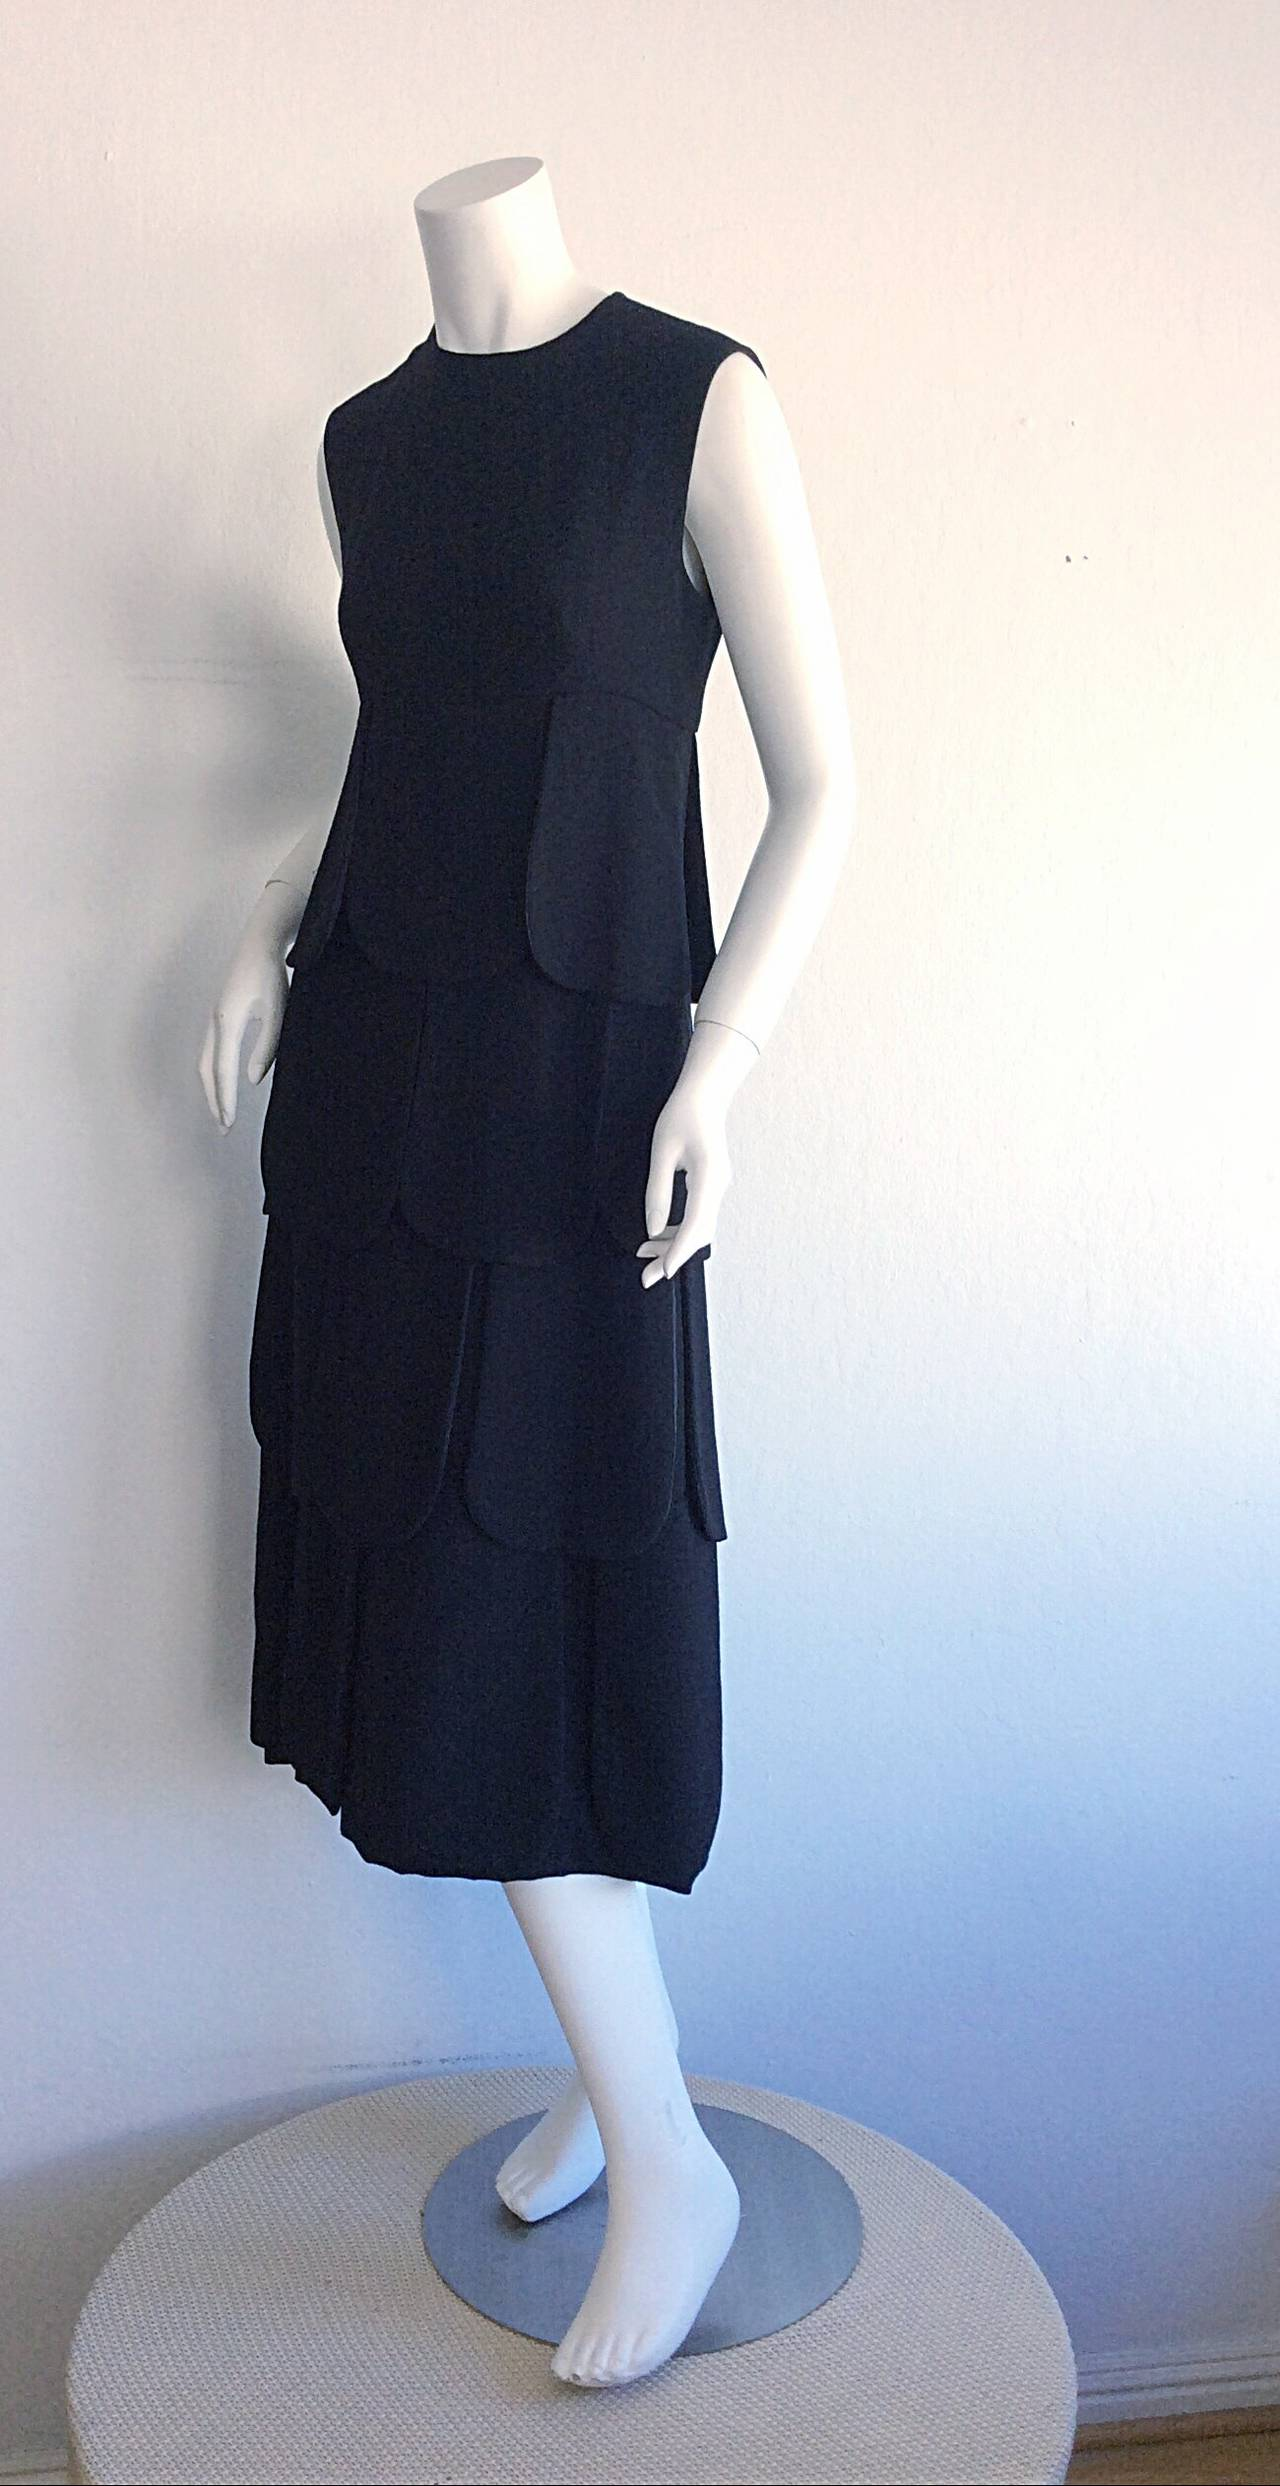 Extremely rare, and iconic 1960s Pierre Cardin 'Car Wash' dress! Intricately hand sewn, with impeccable construction. Black wool petals perfectly placed throughout the entire dress. Looks amazing on the body, and fantastic on the dance floor. Fully